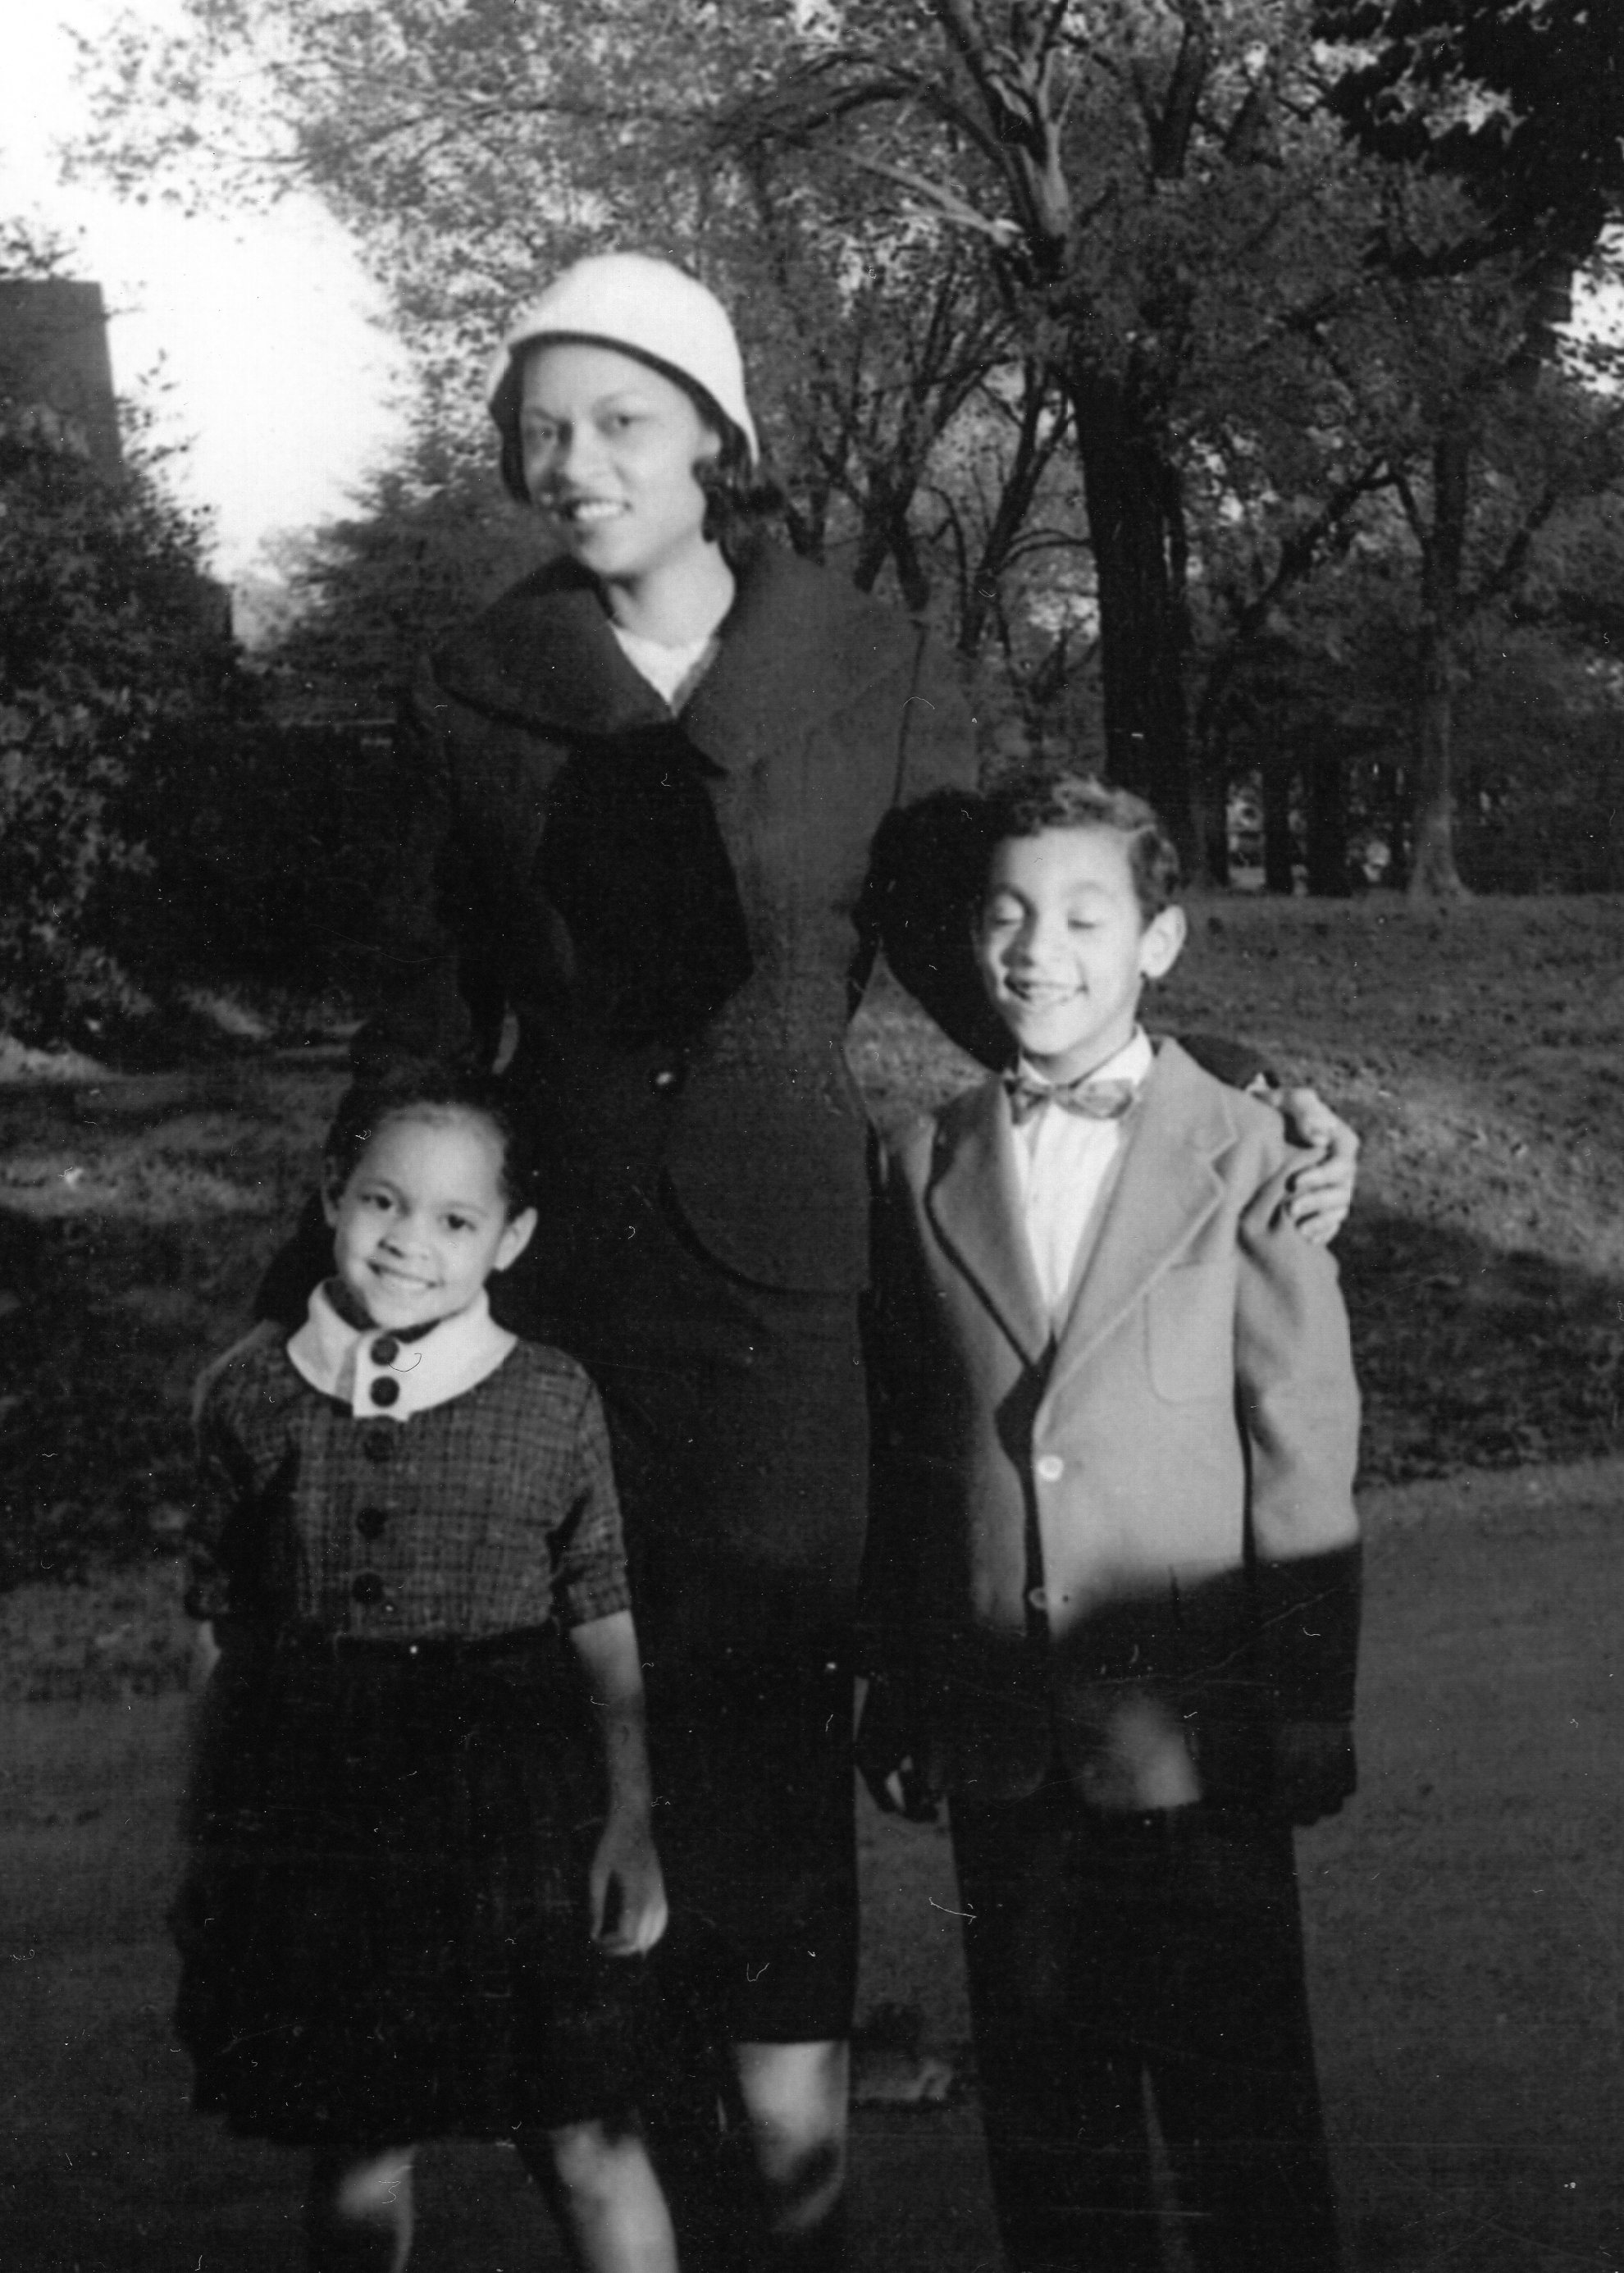 Left to right:  Erica's mother, grandmother, and uncle in the front yard of their home on Parkway, circa mid-1950's.